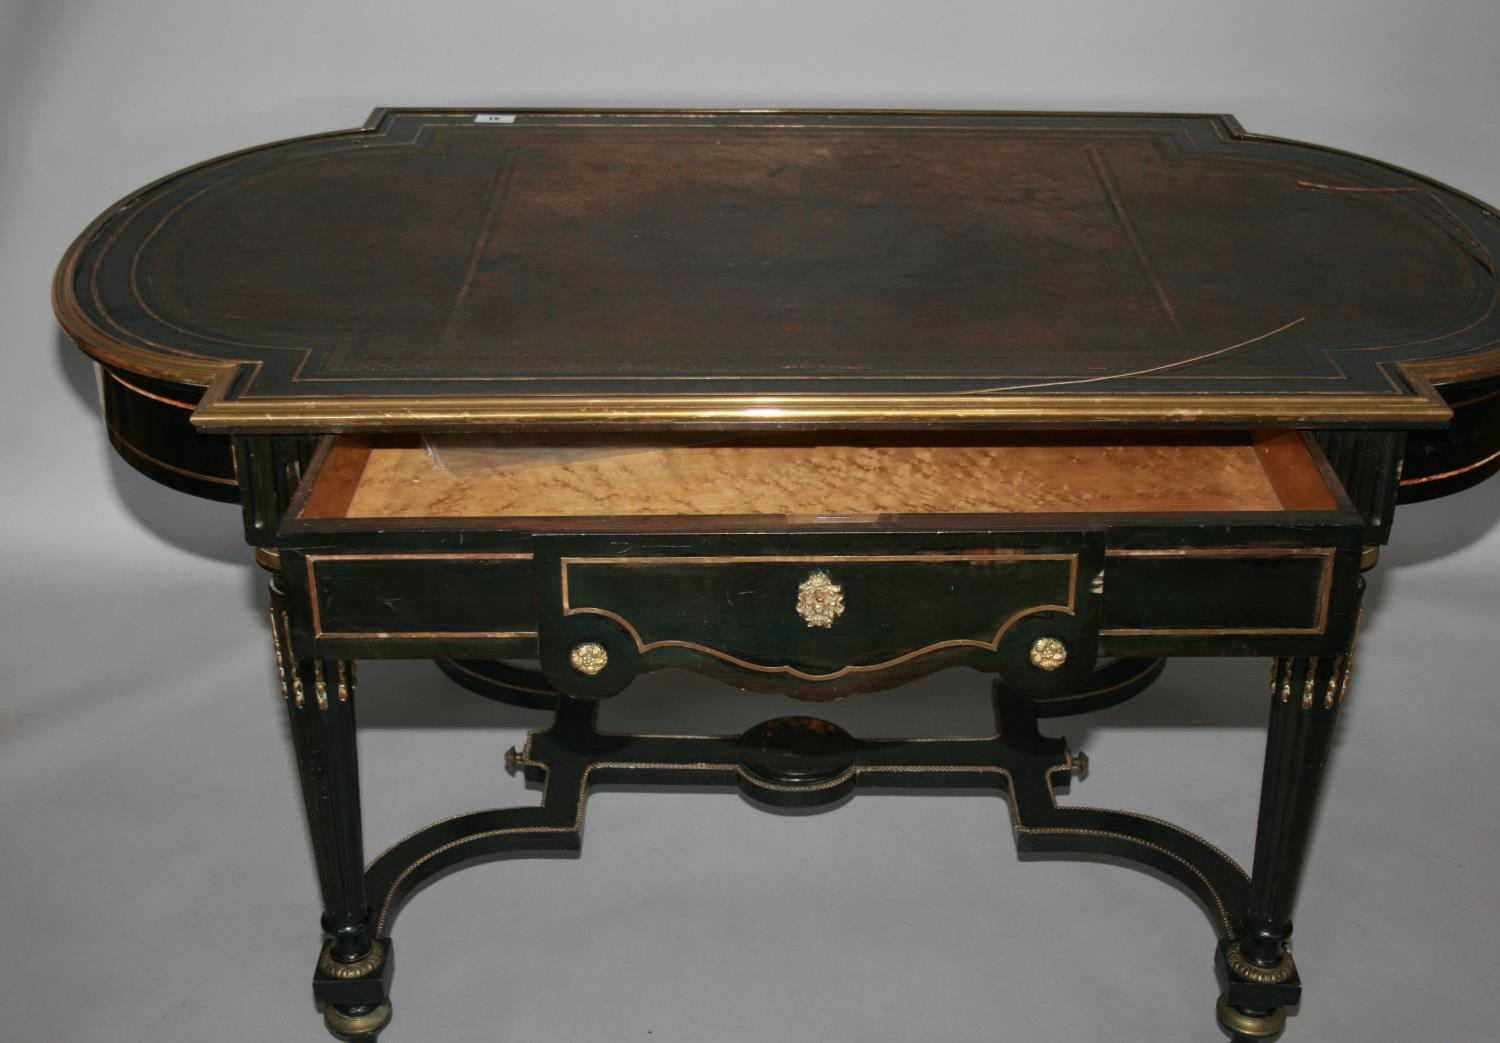 19th Century ebonised and brass mounted centre table with frieze drawer as found 152 W x 76 H x 90 - Image 3 of 3